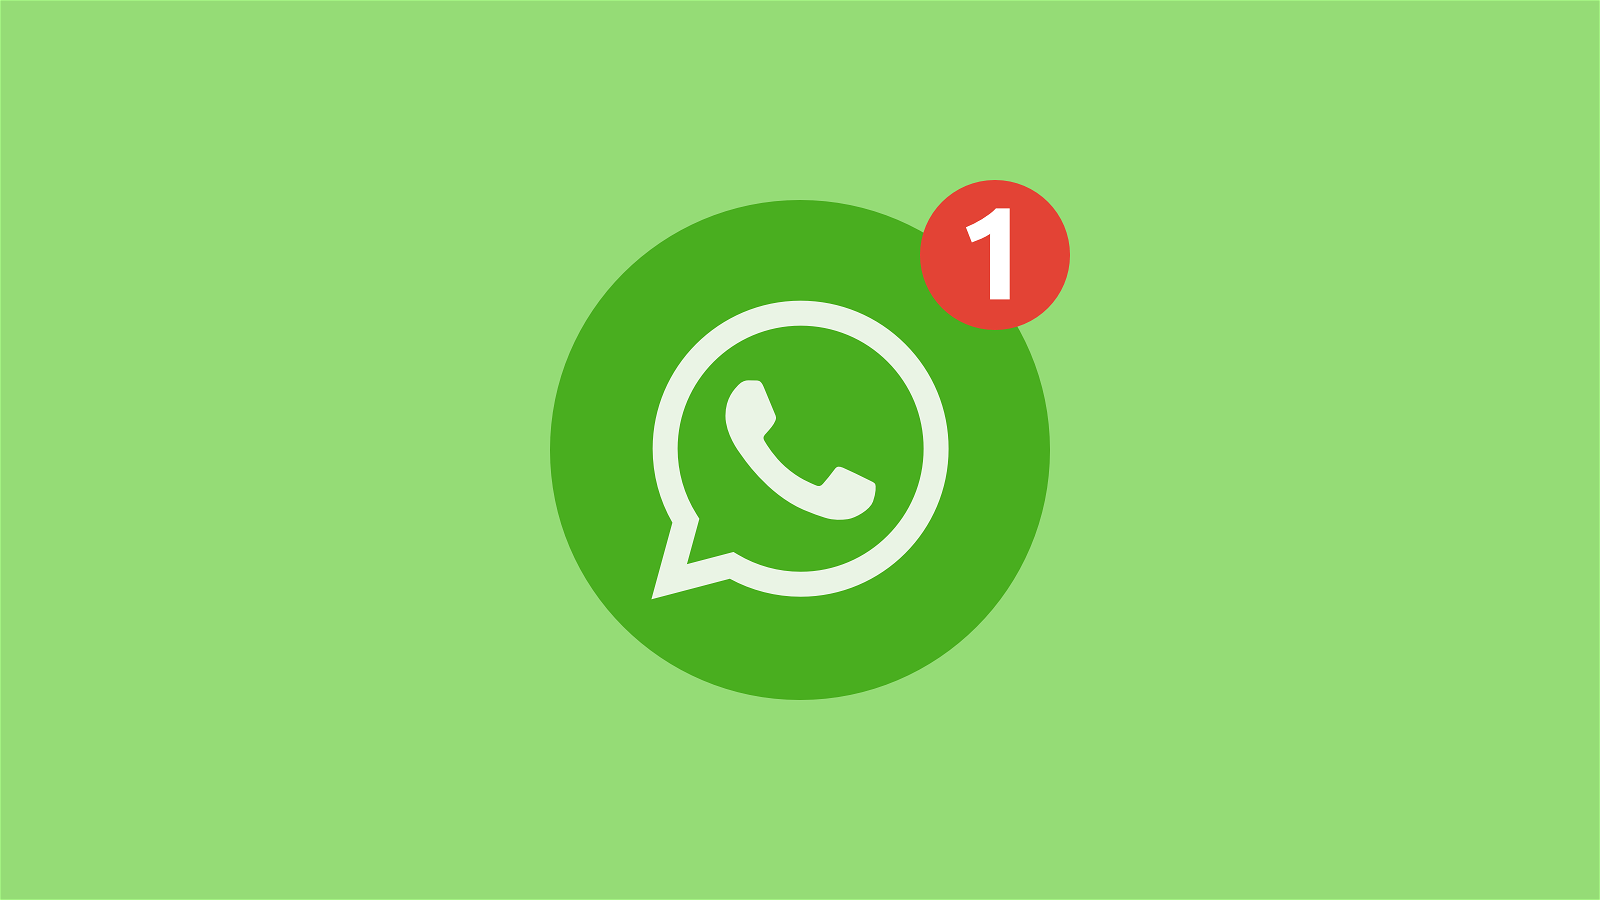 WhatsApp Introduces New Group Call Ringtone, Animated Stickers Tweaks in Latest Beta Version